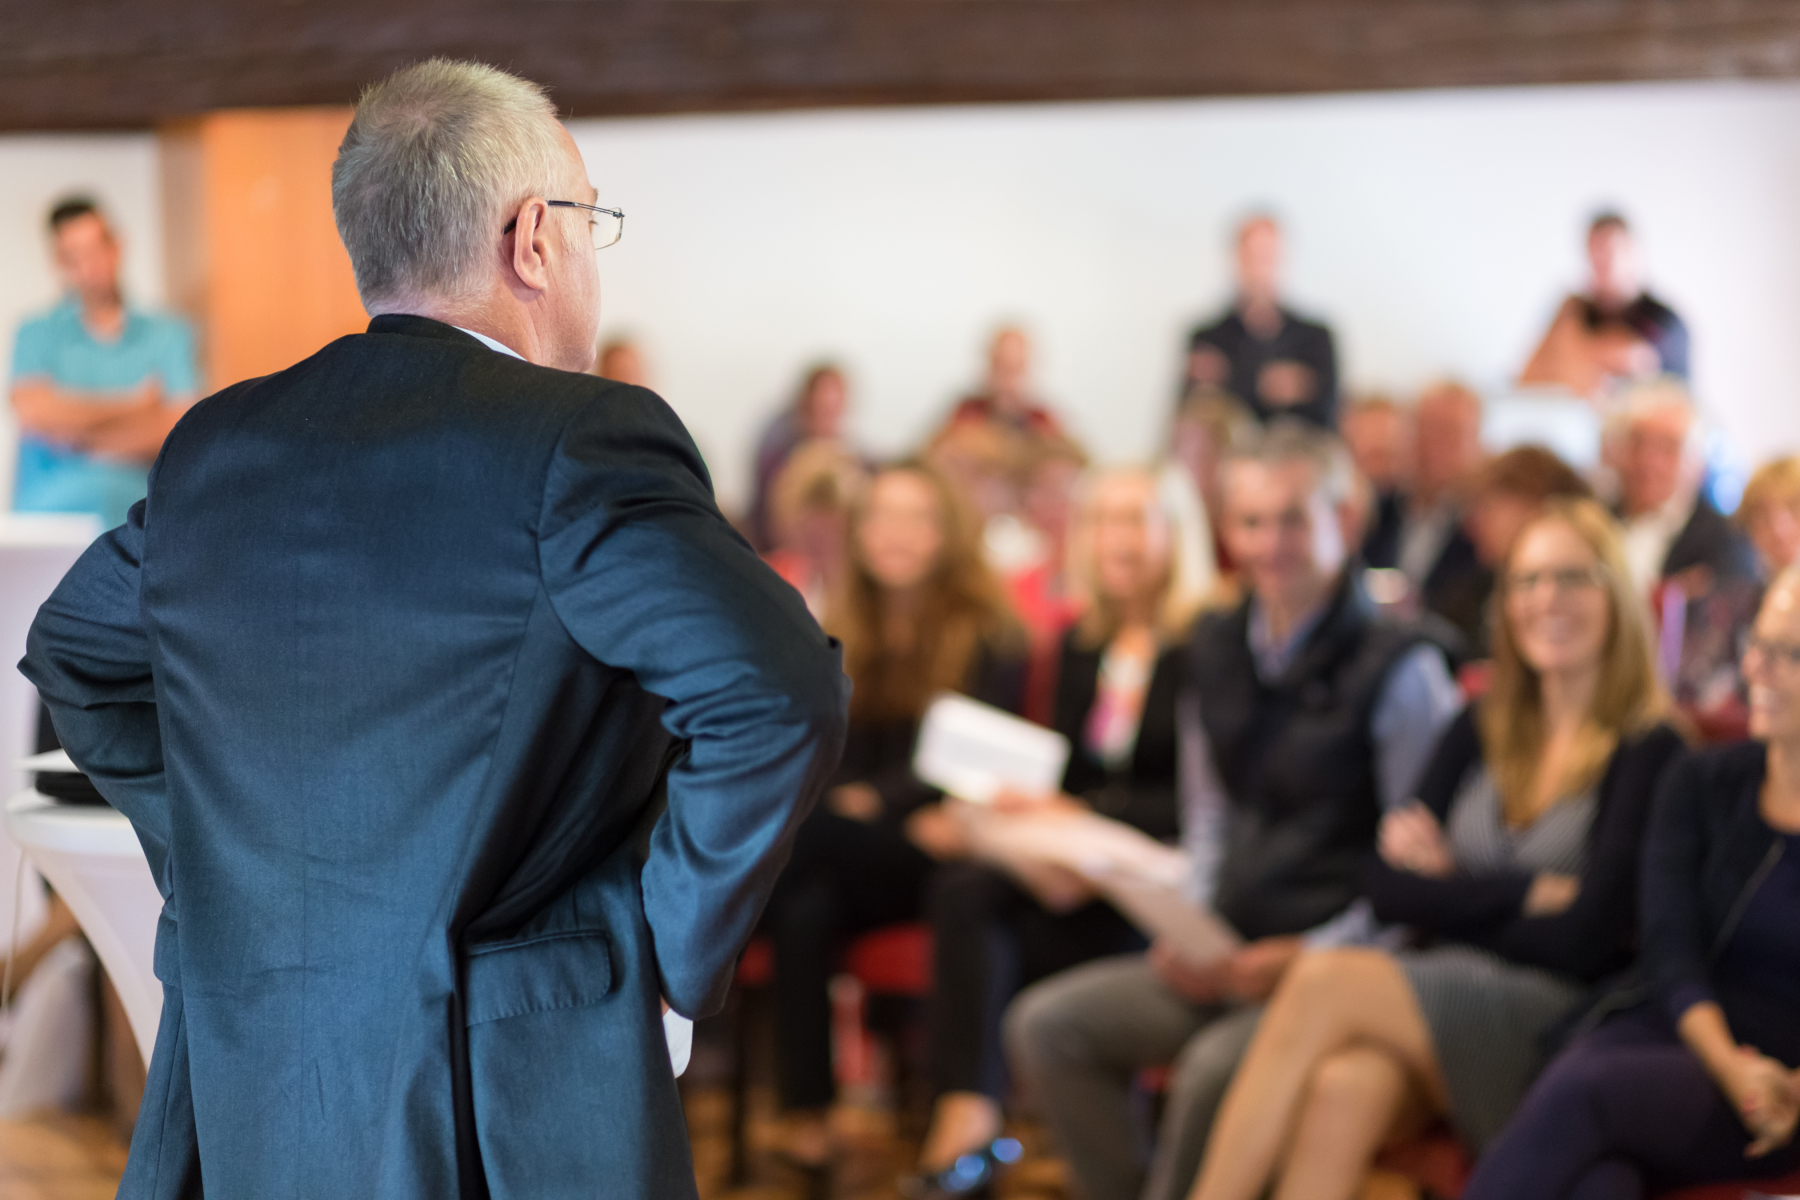 15184797-speaker-at-business-conference-and-presentation